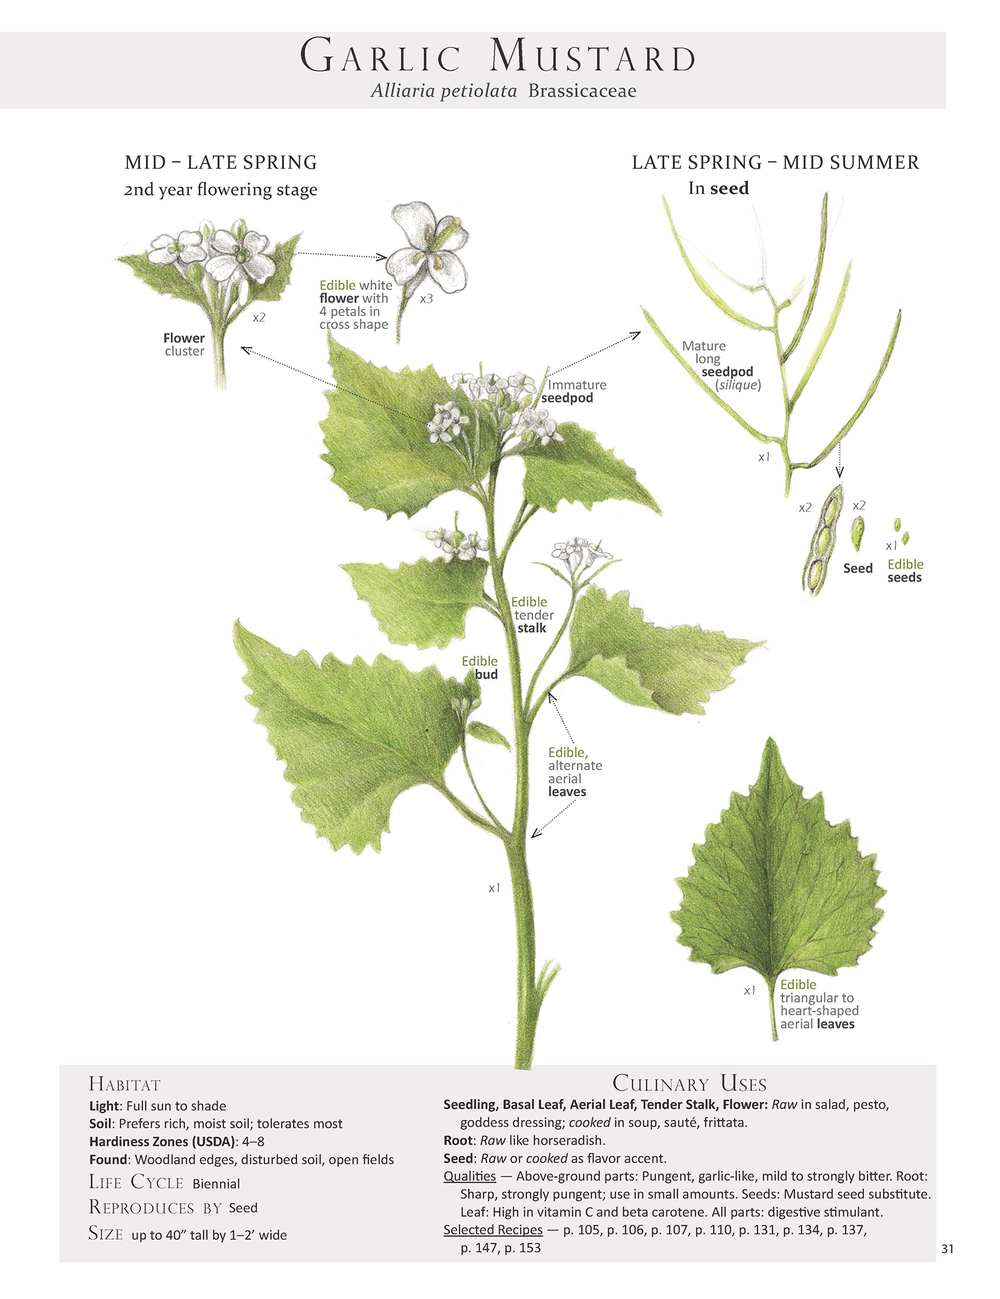 Garlic Mustard Plant Identification page from our book Foraging & Feasting: A Field Guide and Wild Food Cookbook by Dina Falconi; illustrated by Wendy Hollender.      http://bit.ly/1Auh44Q